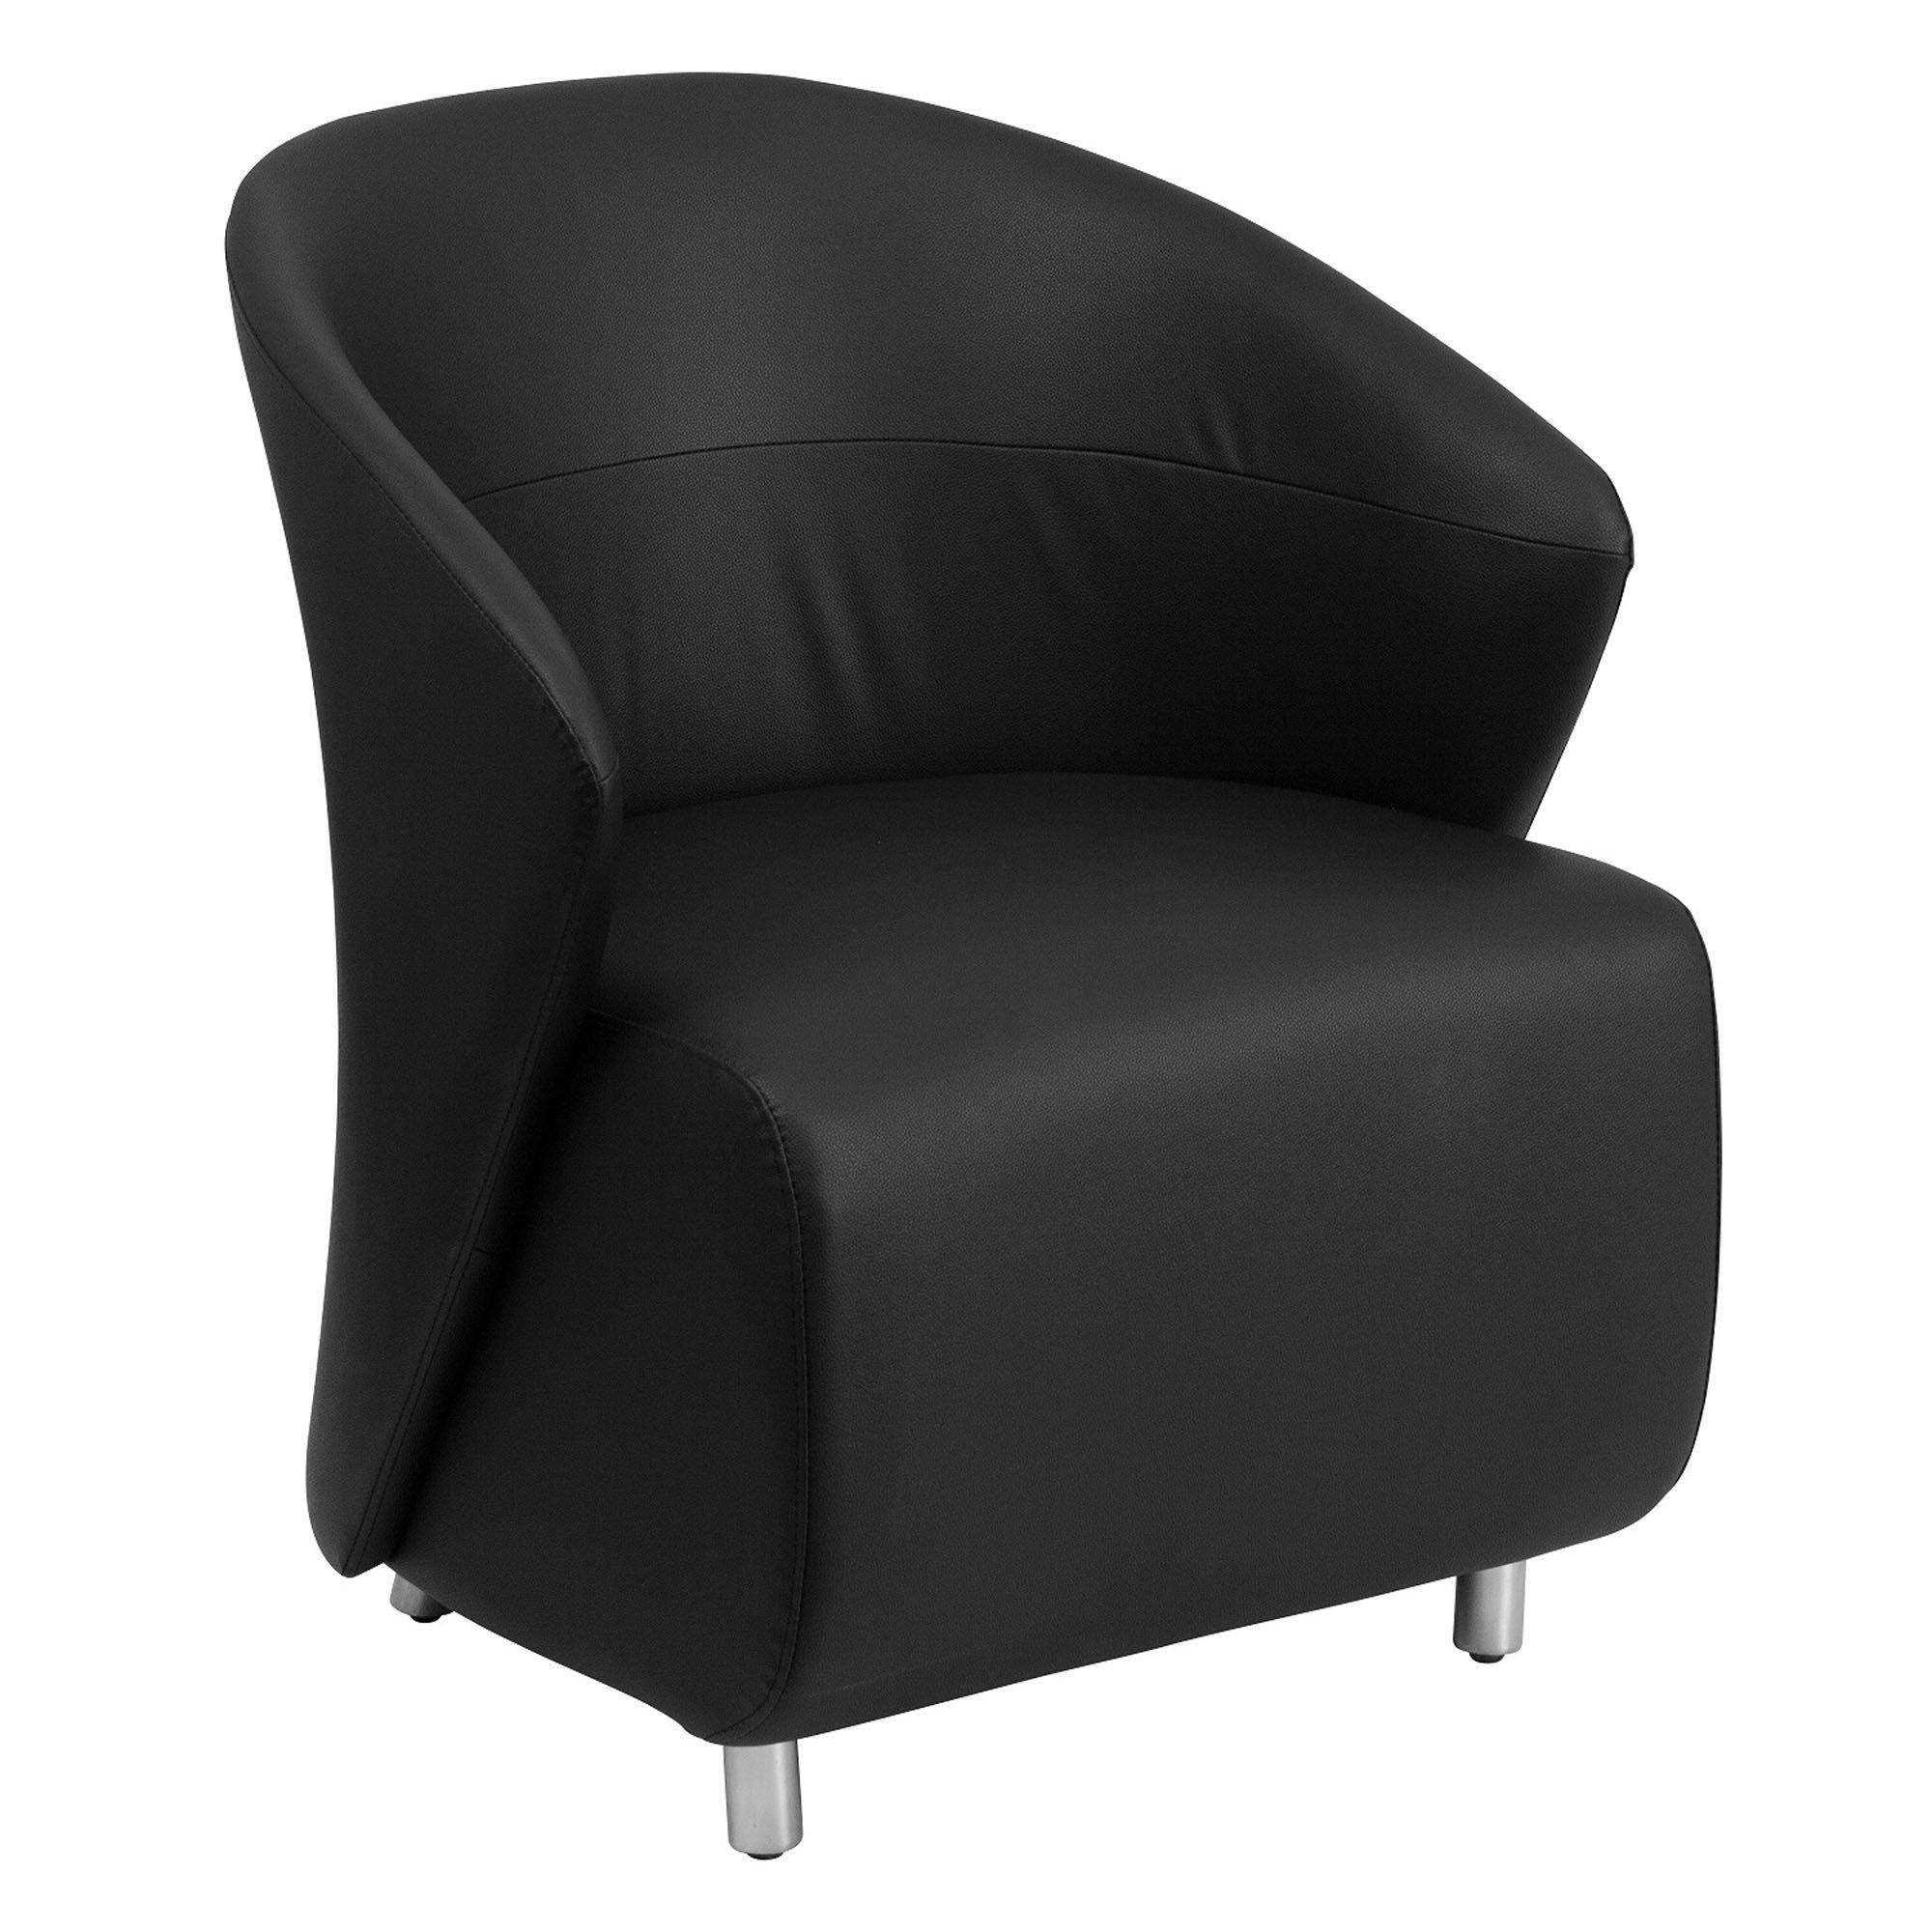 Nextgen Curved Barrel Back Reception/Lounge Chair, Black Leathersoft Upholstery